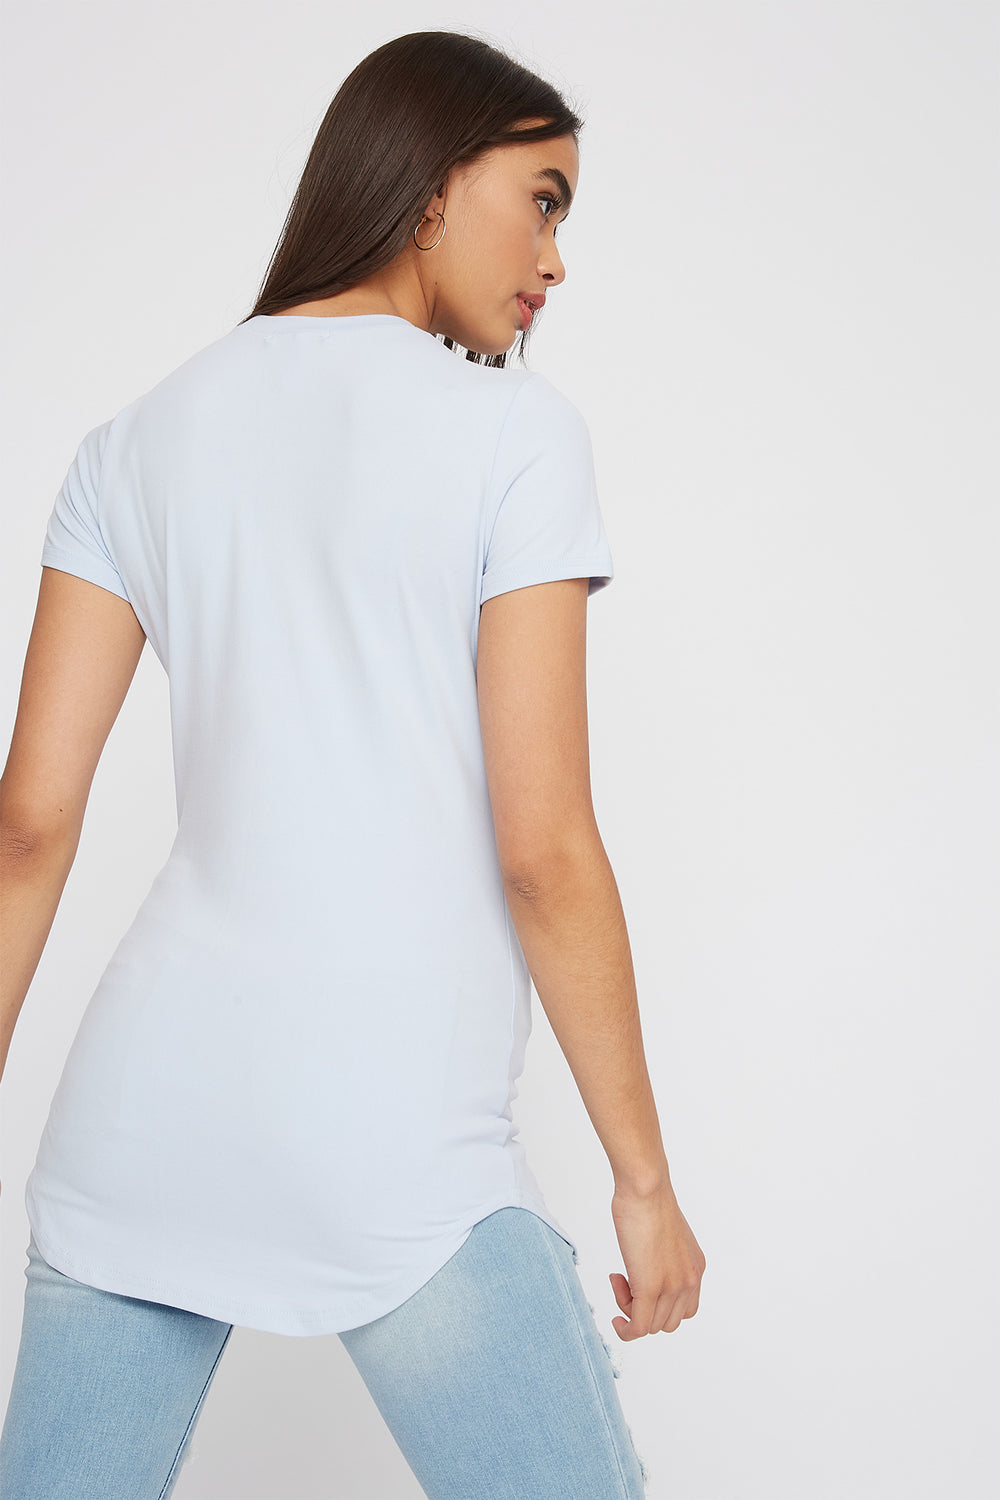 Soft Crew Neck Longline T-Shirt Light Blue